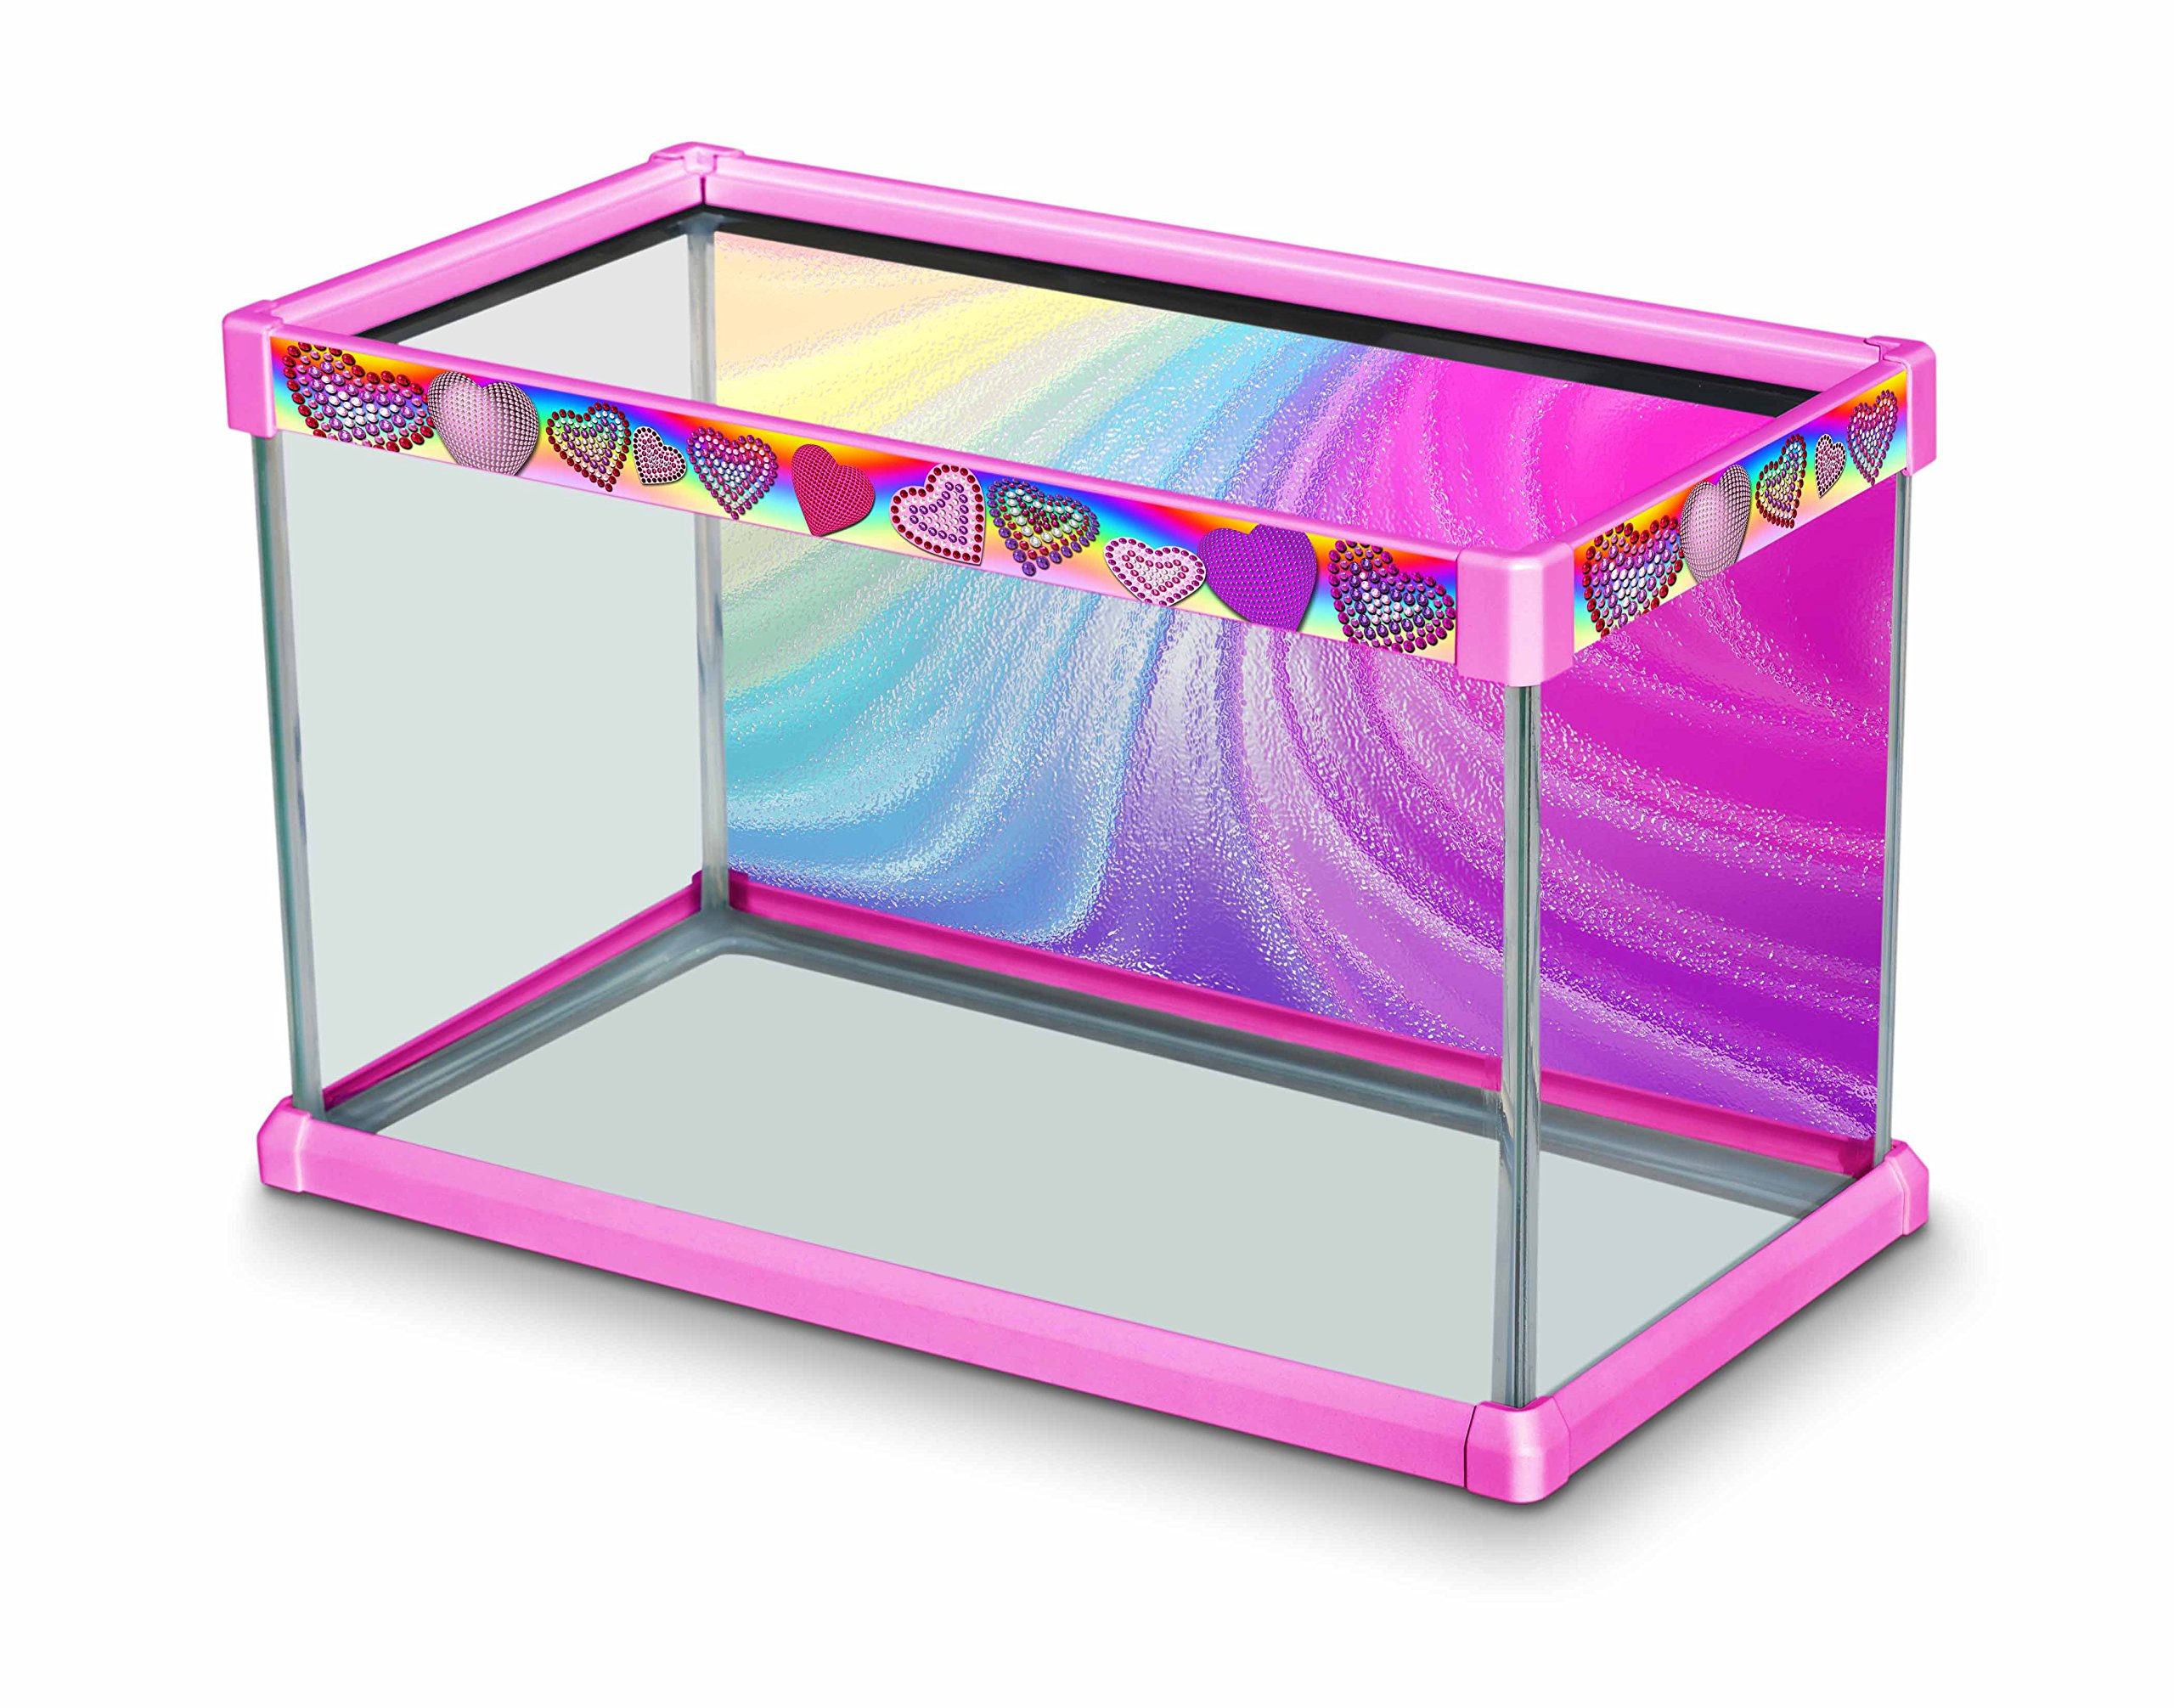 Elive Aquarium Fish Tank Decorative Frame Kit with Background for 10 Gallon Tanks (20'' x 10'' x 12''), Playful Pink - Bedazzled Heart Design by Elive